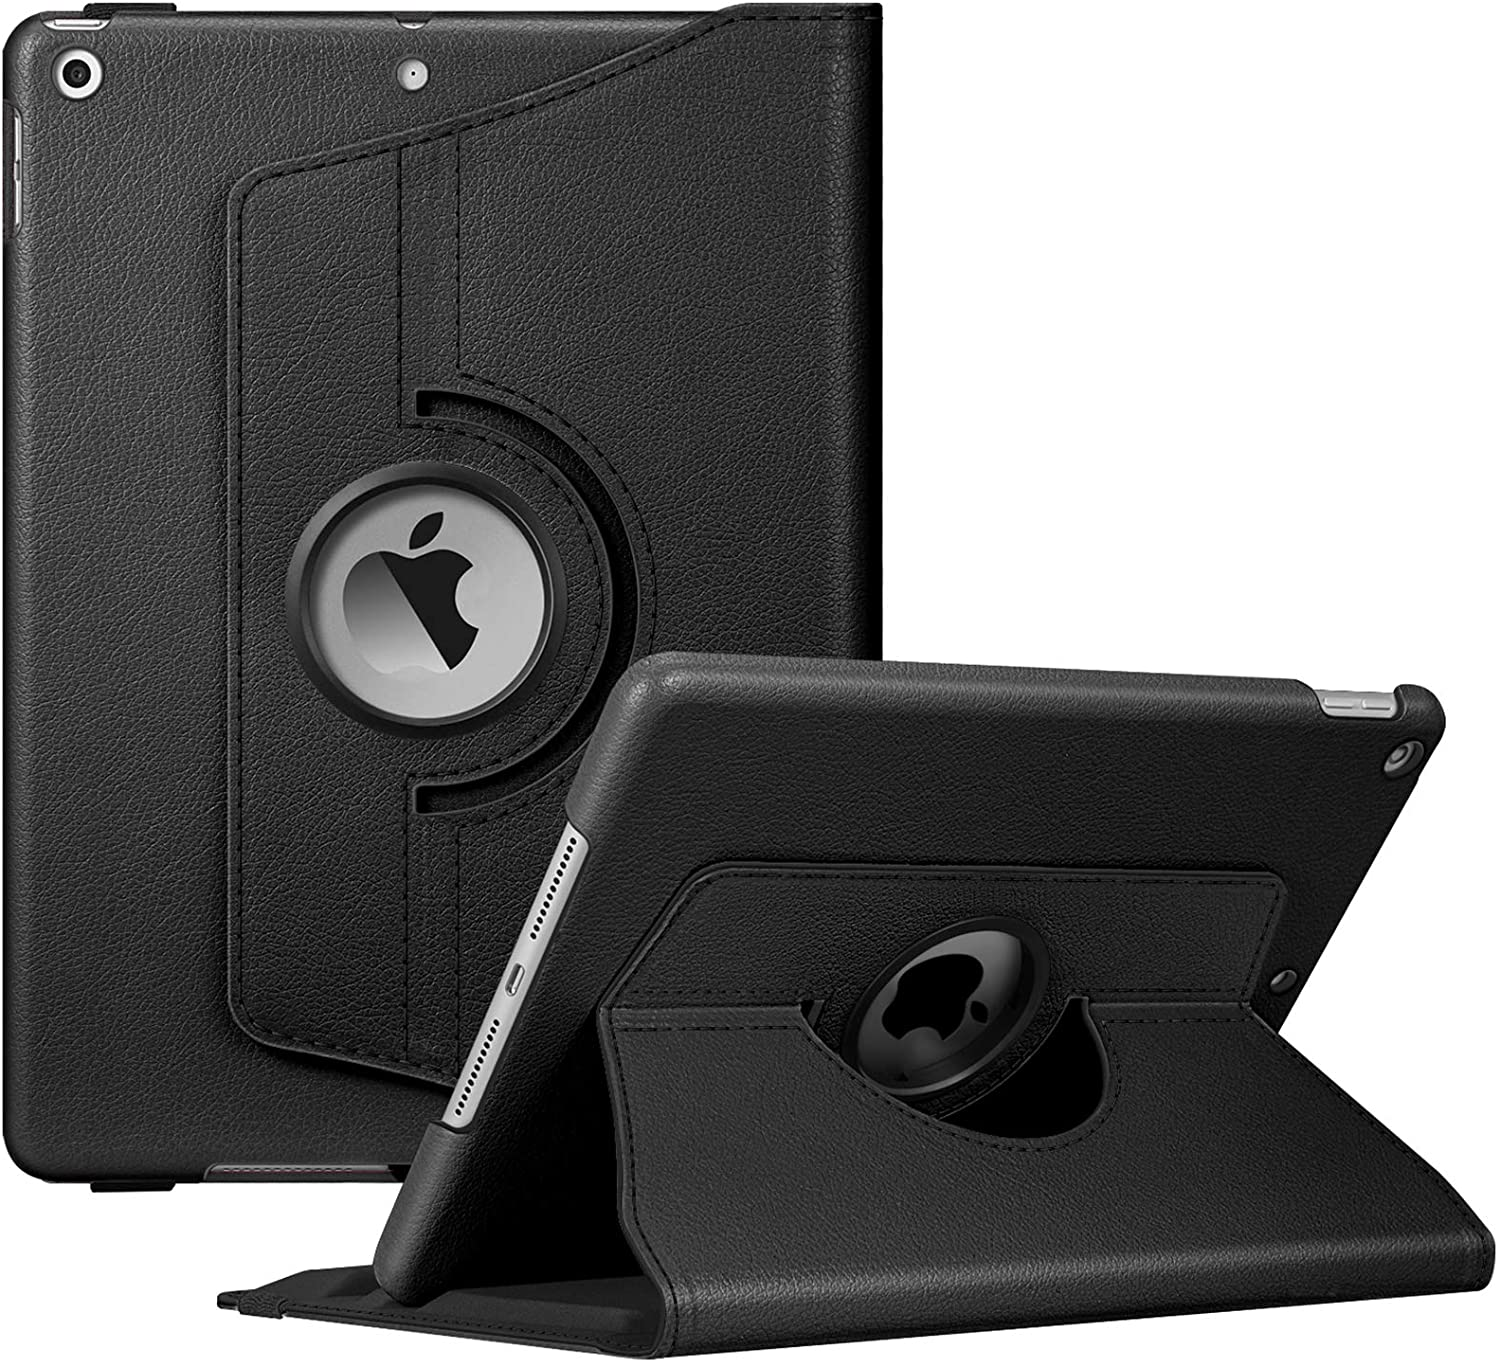 Built-in Pencil Holder 360 Degree Rotating Smart Protective Stand Cover with Auto Sleep//Wake for iPad 10.2 Tablet Fintie Rotating Case for New iPad 7th Generation 10.2 Inch 2019 - Black